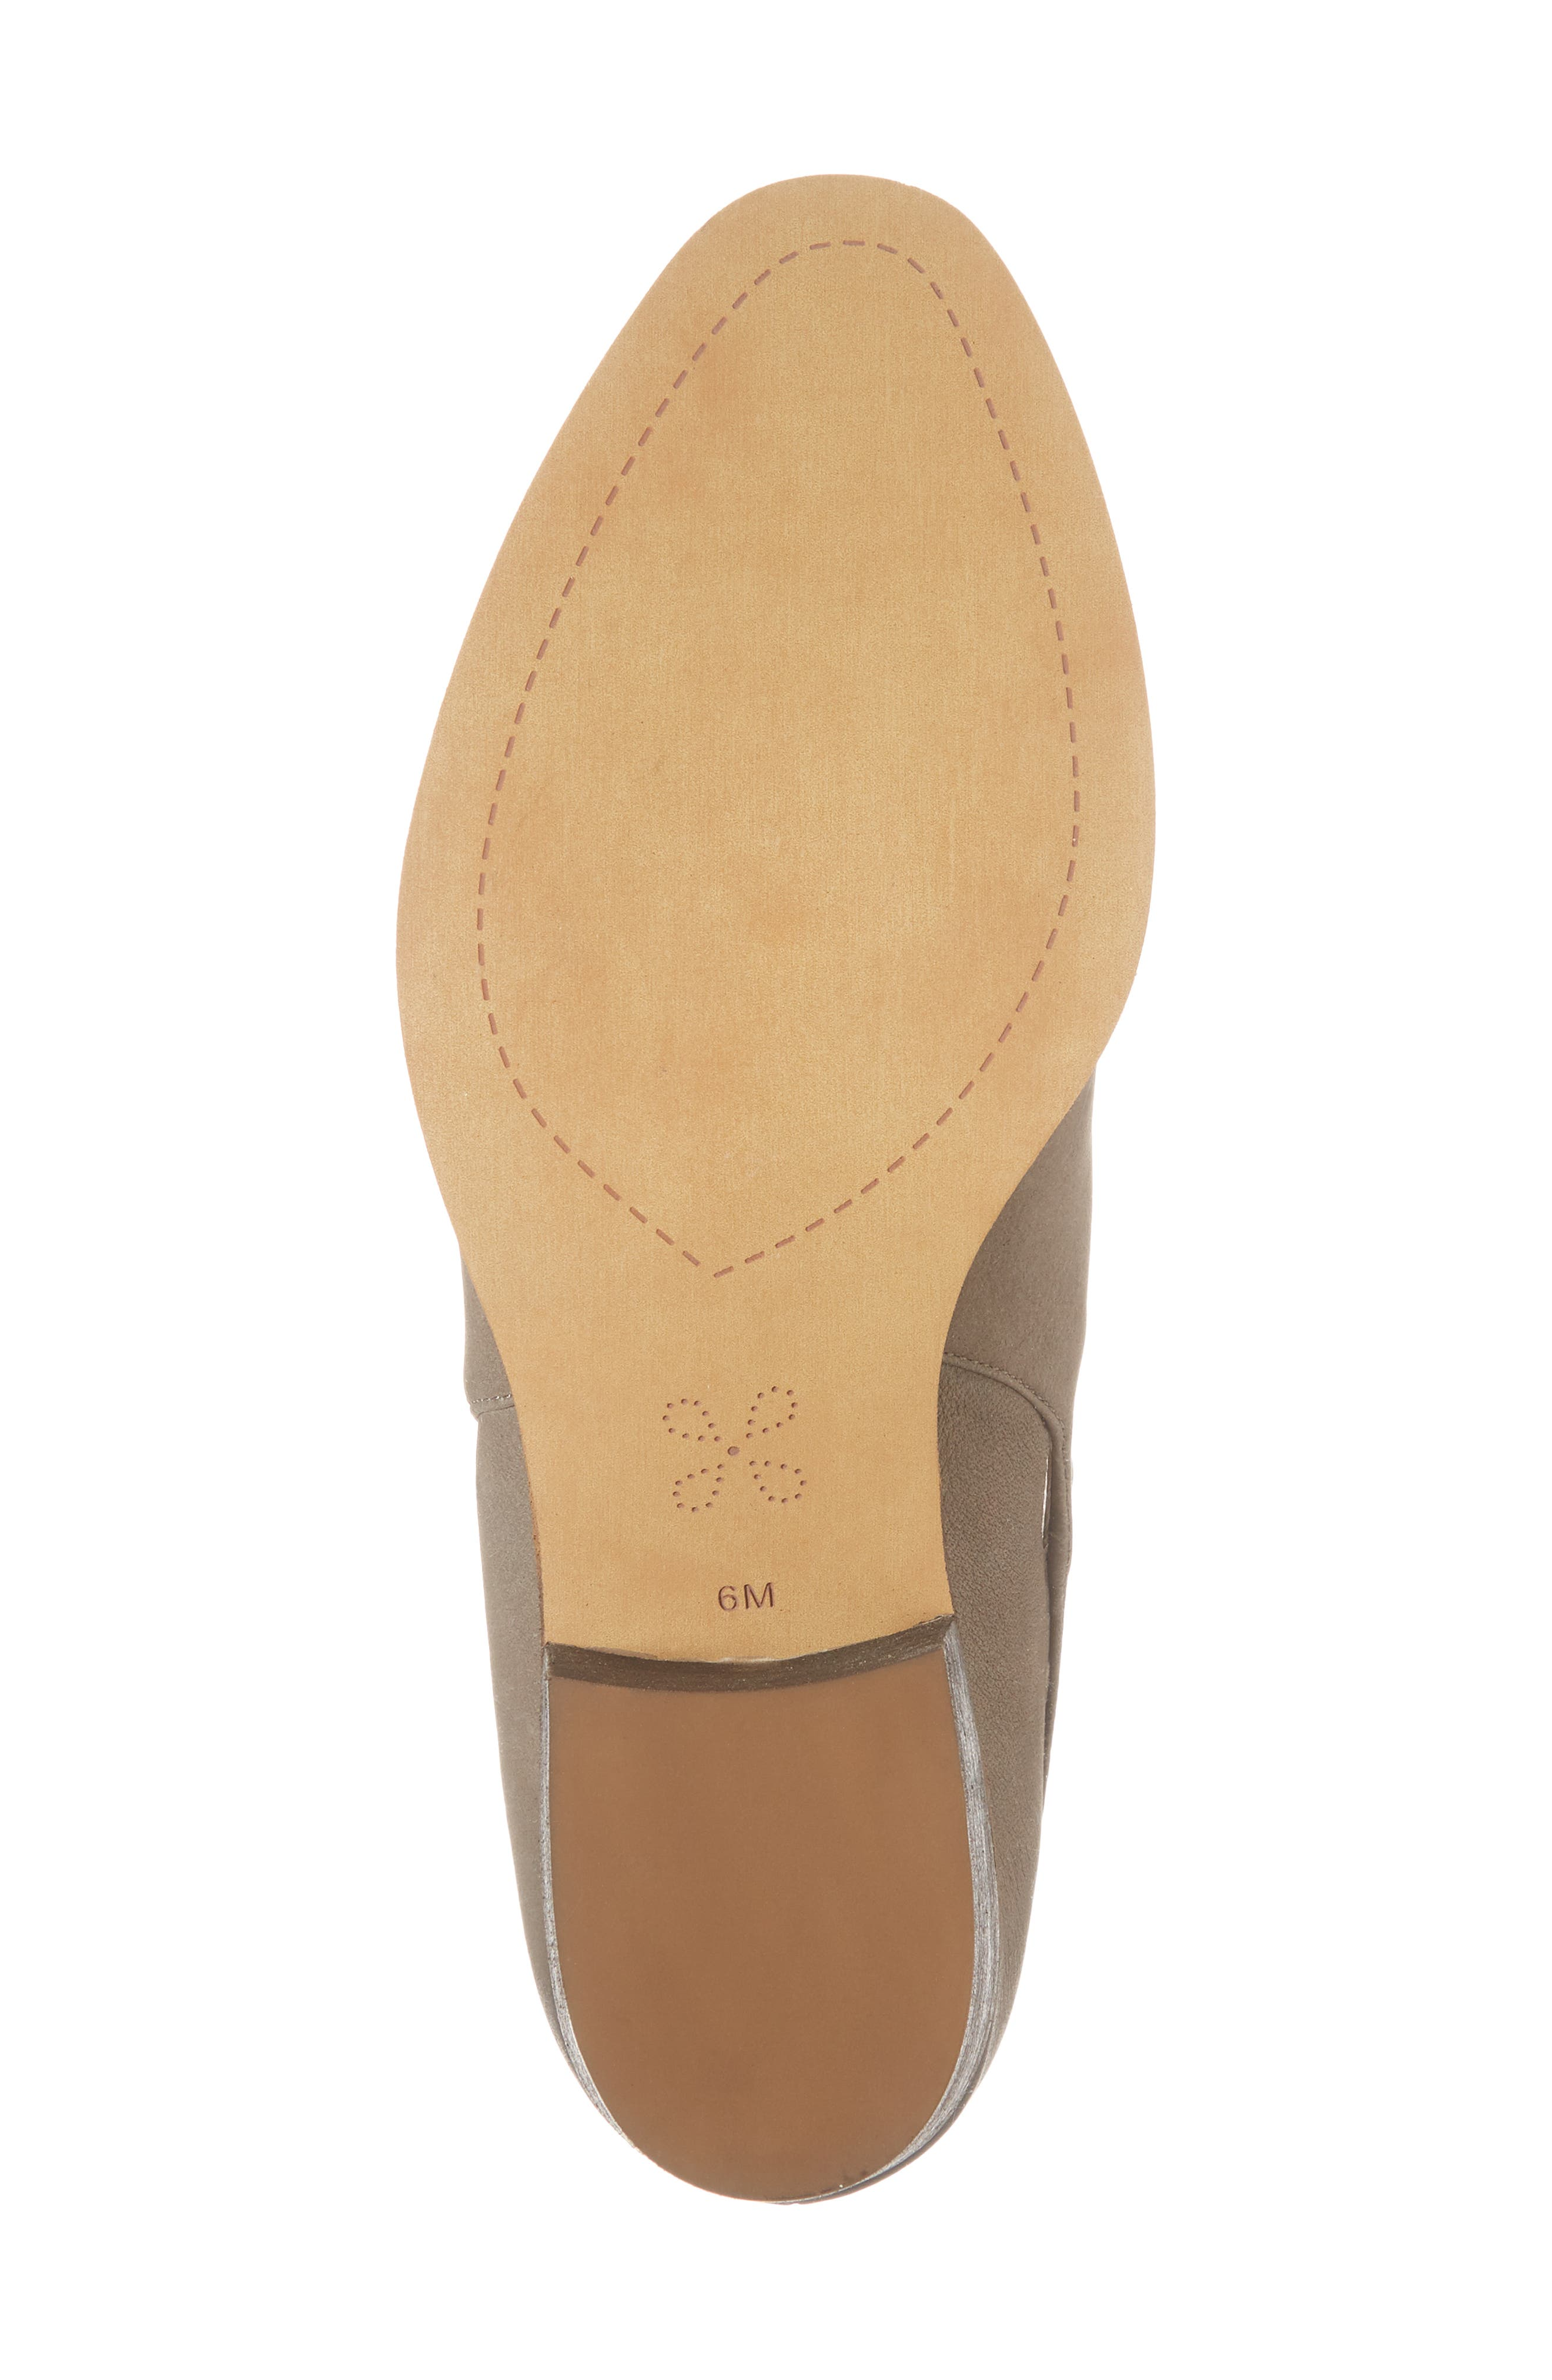 Toby Bootie,                             Alternate thumbnail 6, color,                             STONE OILED NUBUCK